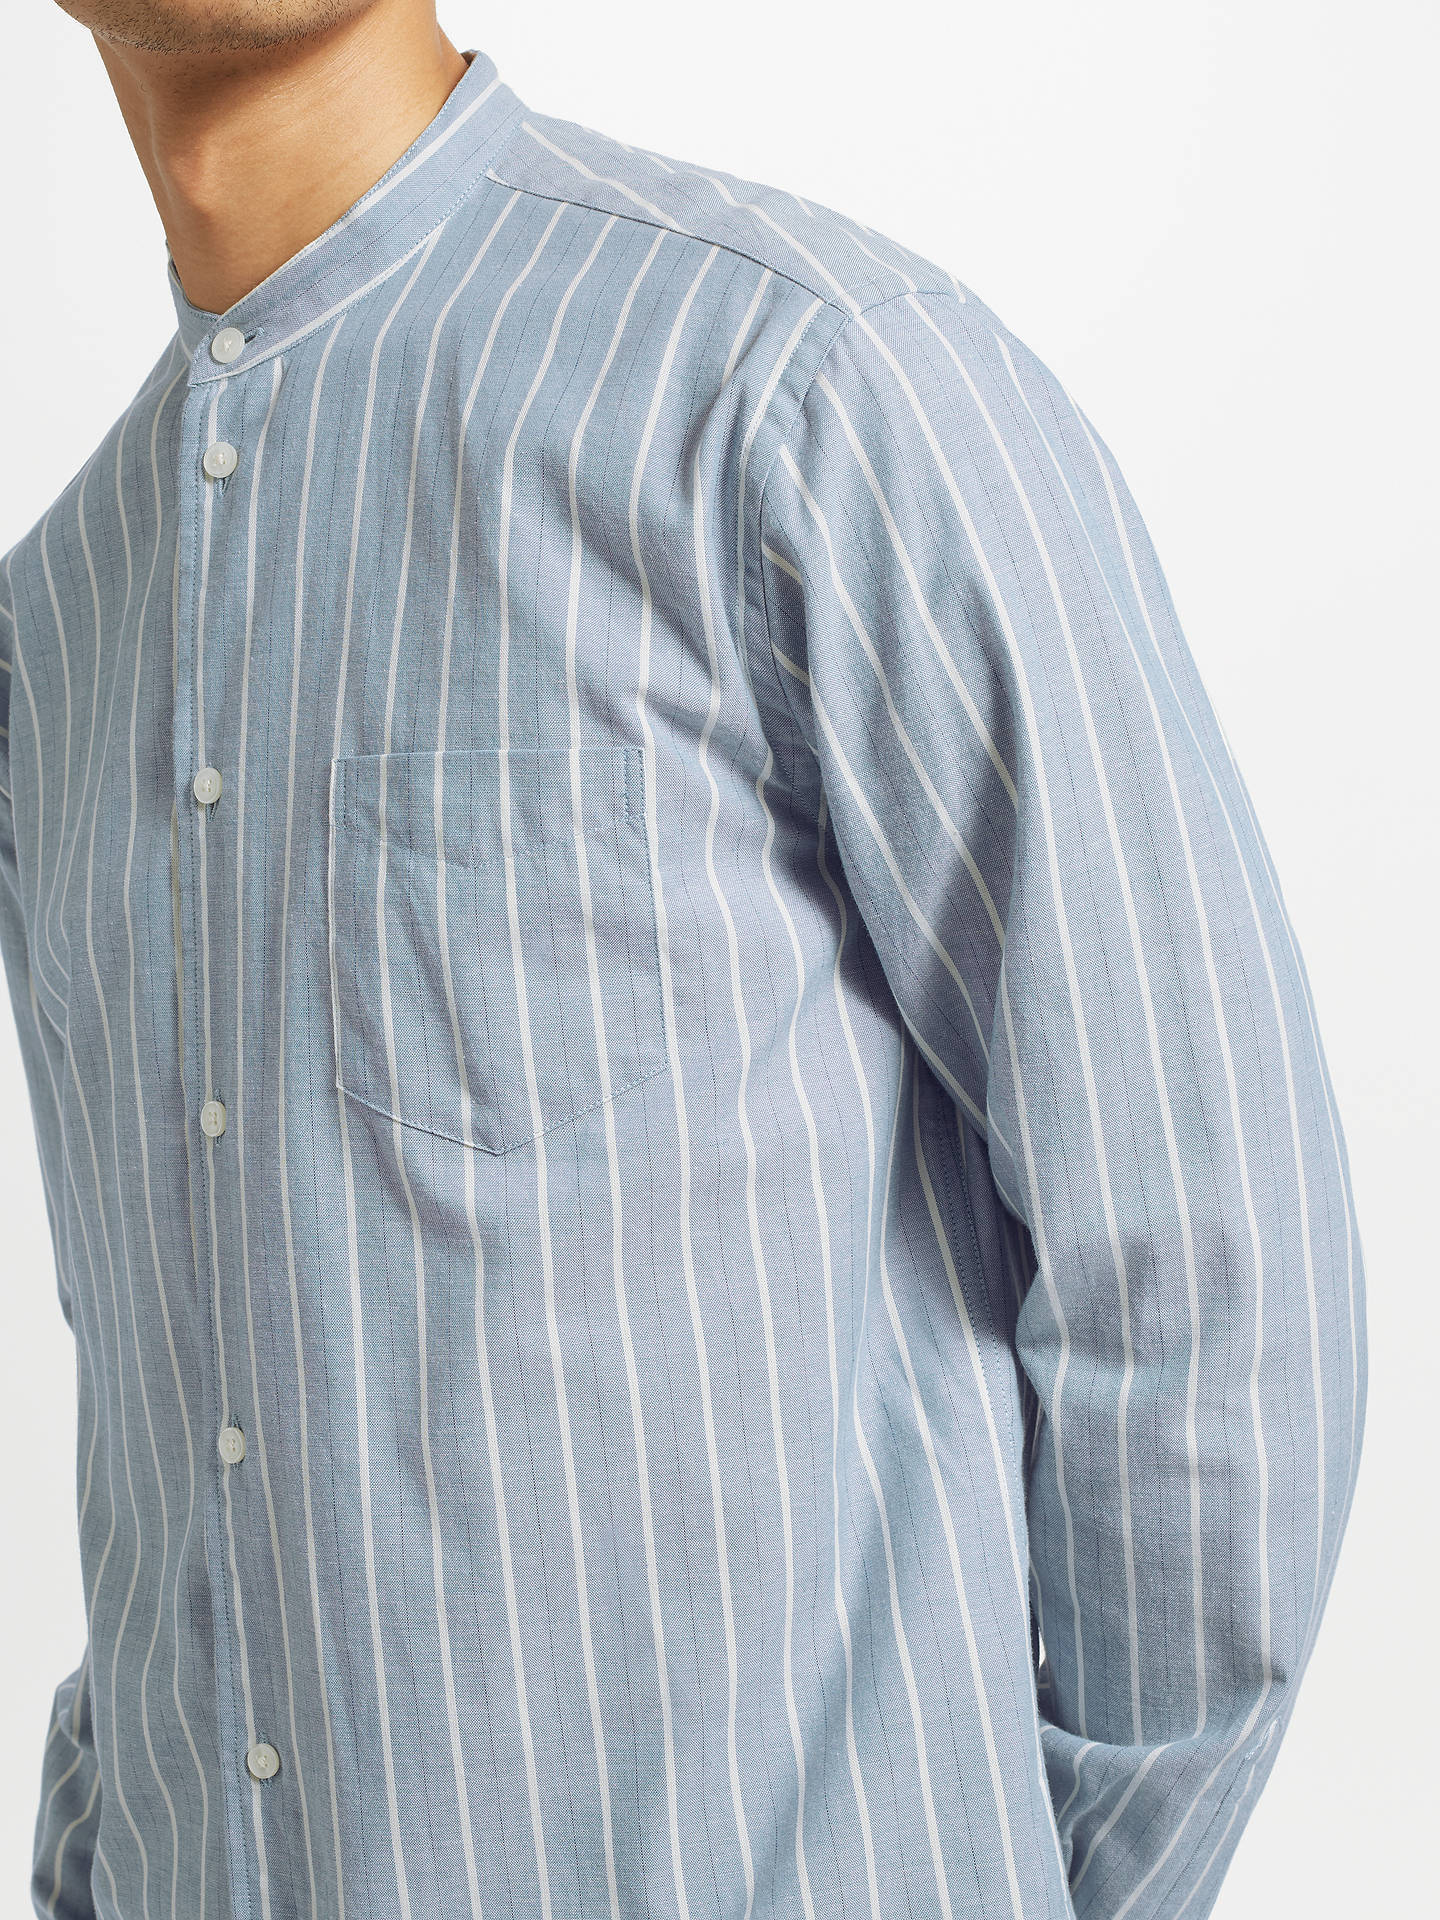 Buy Samsoe & Samsoe Liam Stripe Shirt, Light Blue Stripe, L Online at johnlewis.com